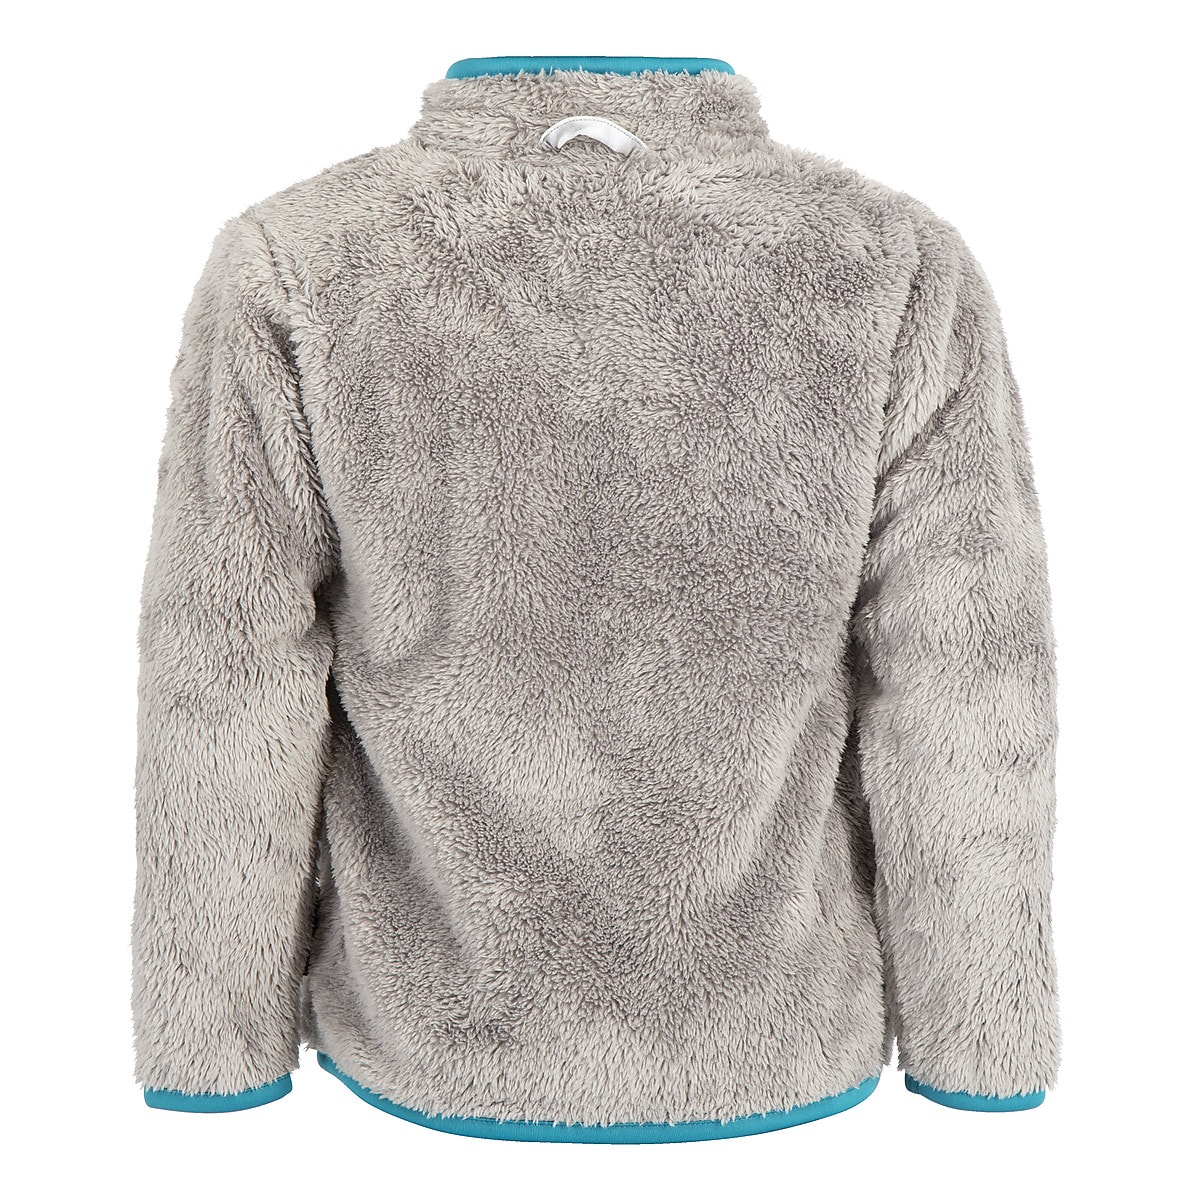 Children's Teddy Fleece Jacket, Grey